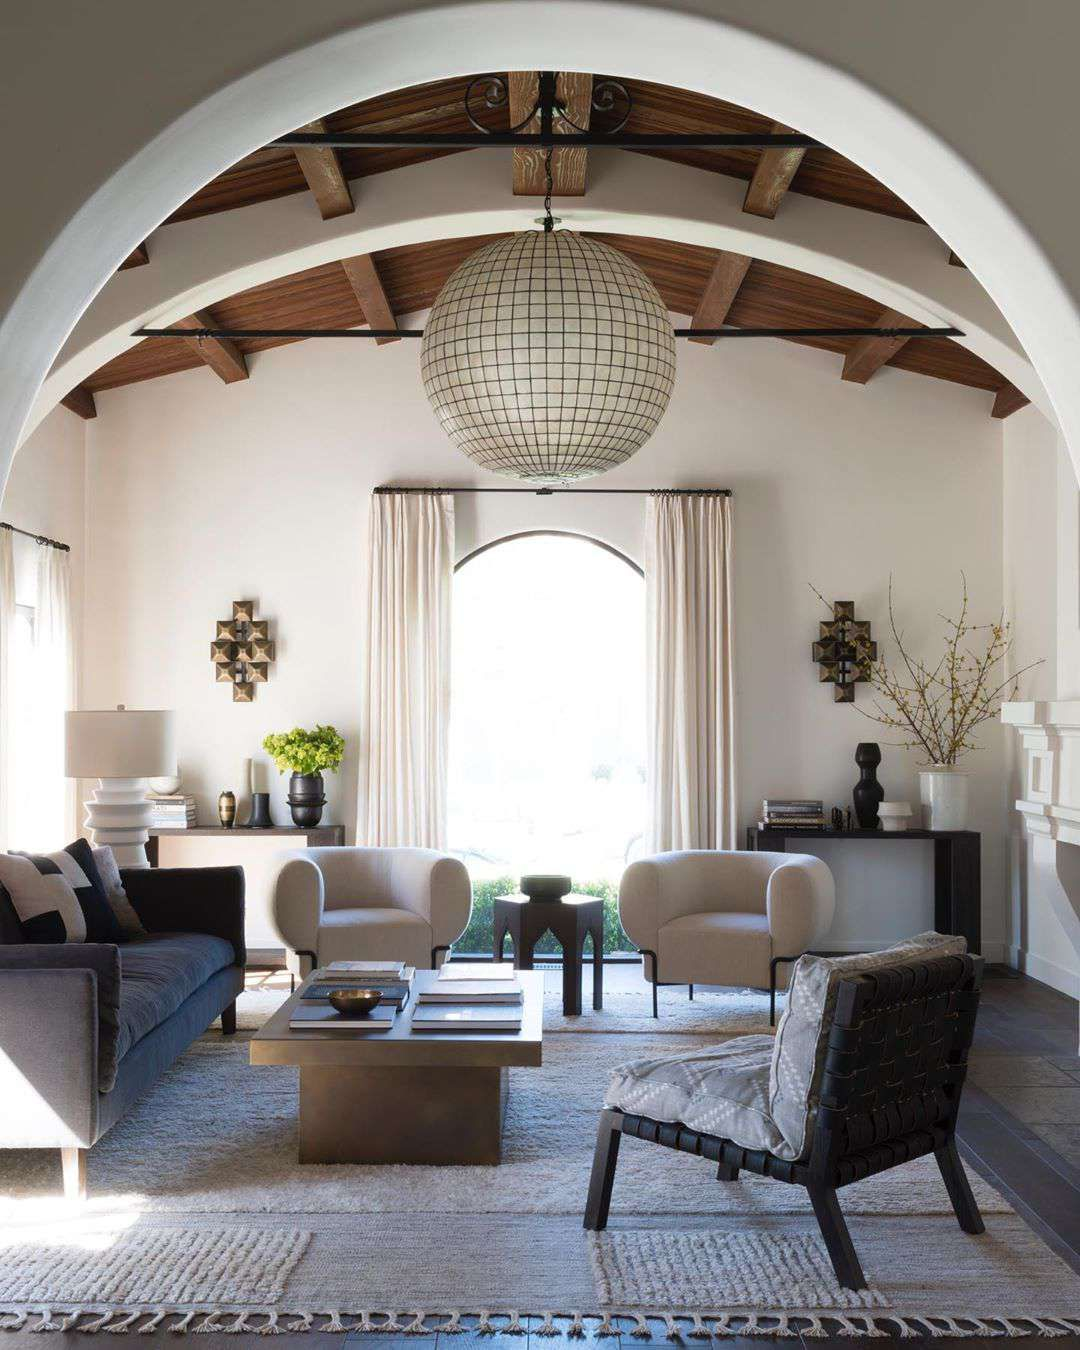 11 Spanish Style Living Rooms You Ll Love In 2020 Spanish Style Interiors Spanish Style Decor Spanish Style Furniture #spanish #style #decorating #living #room